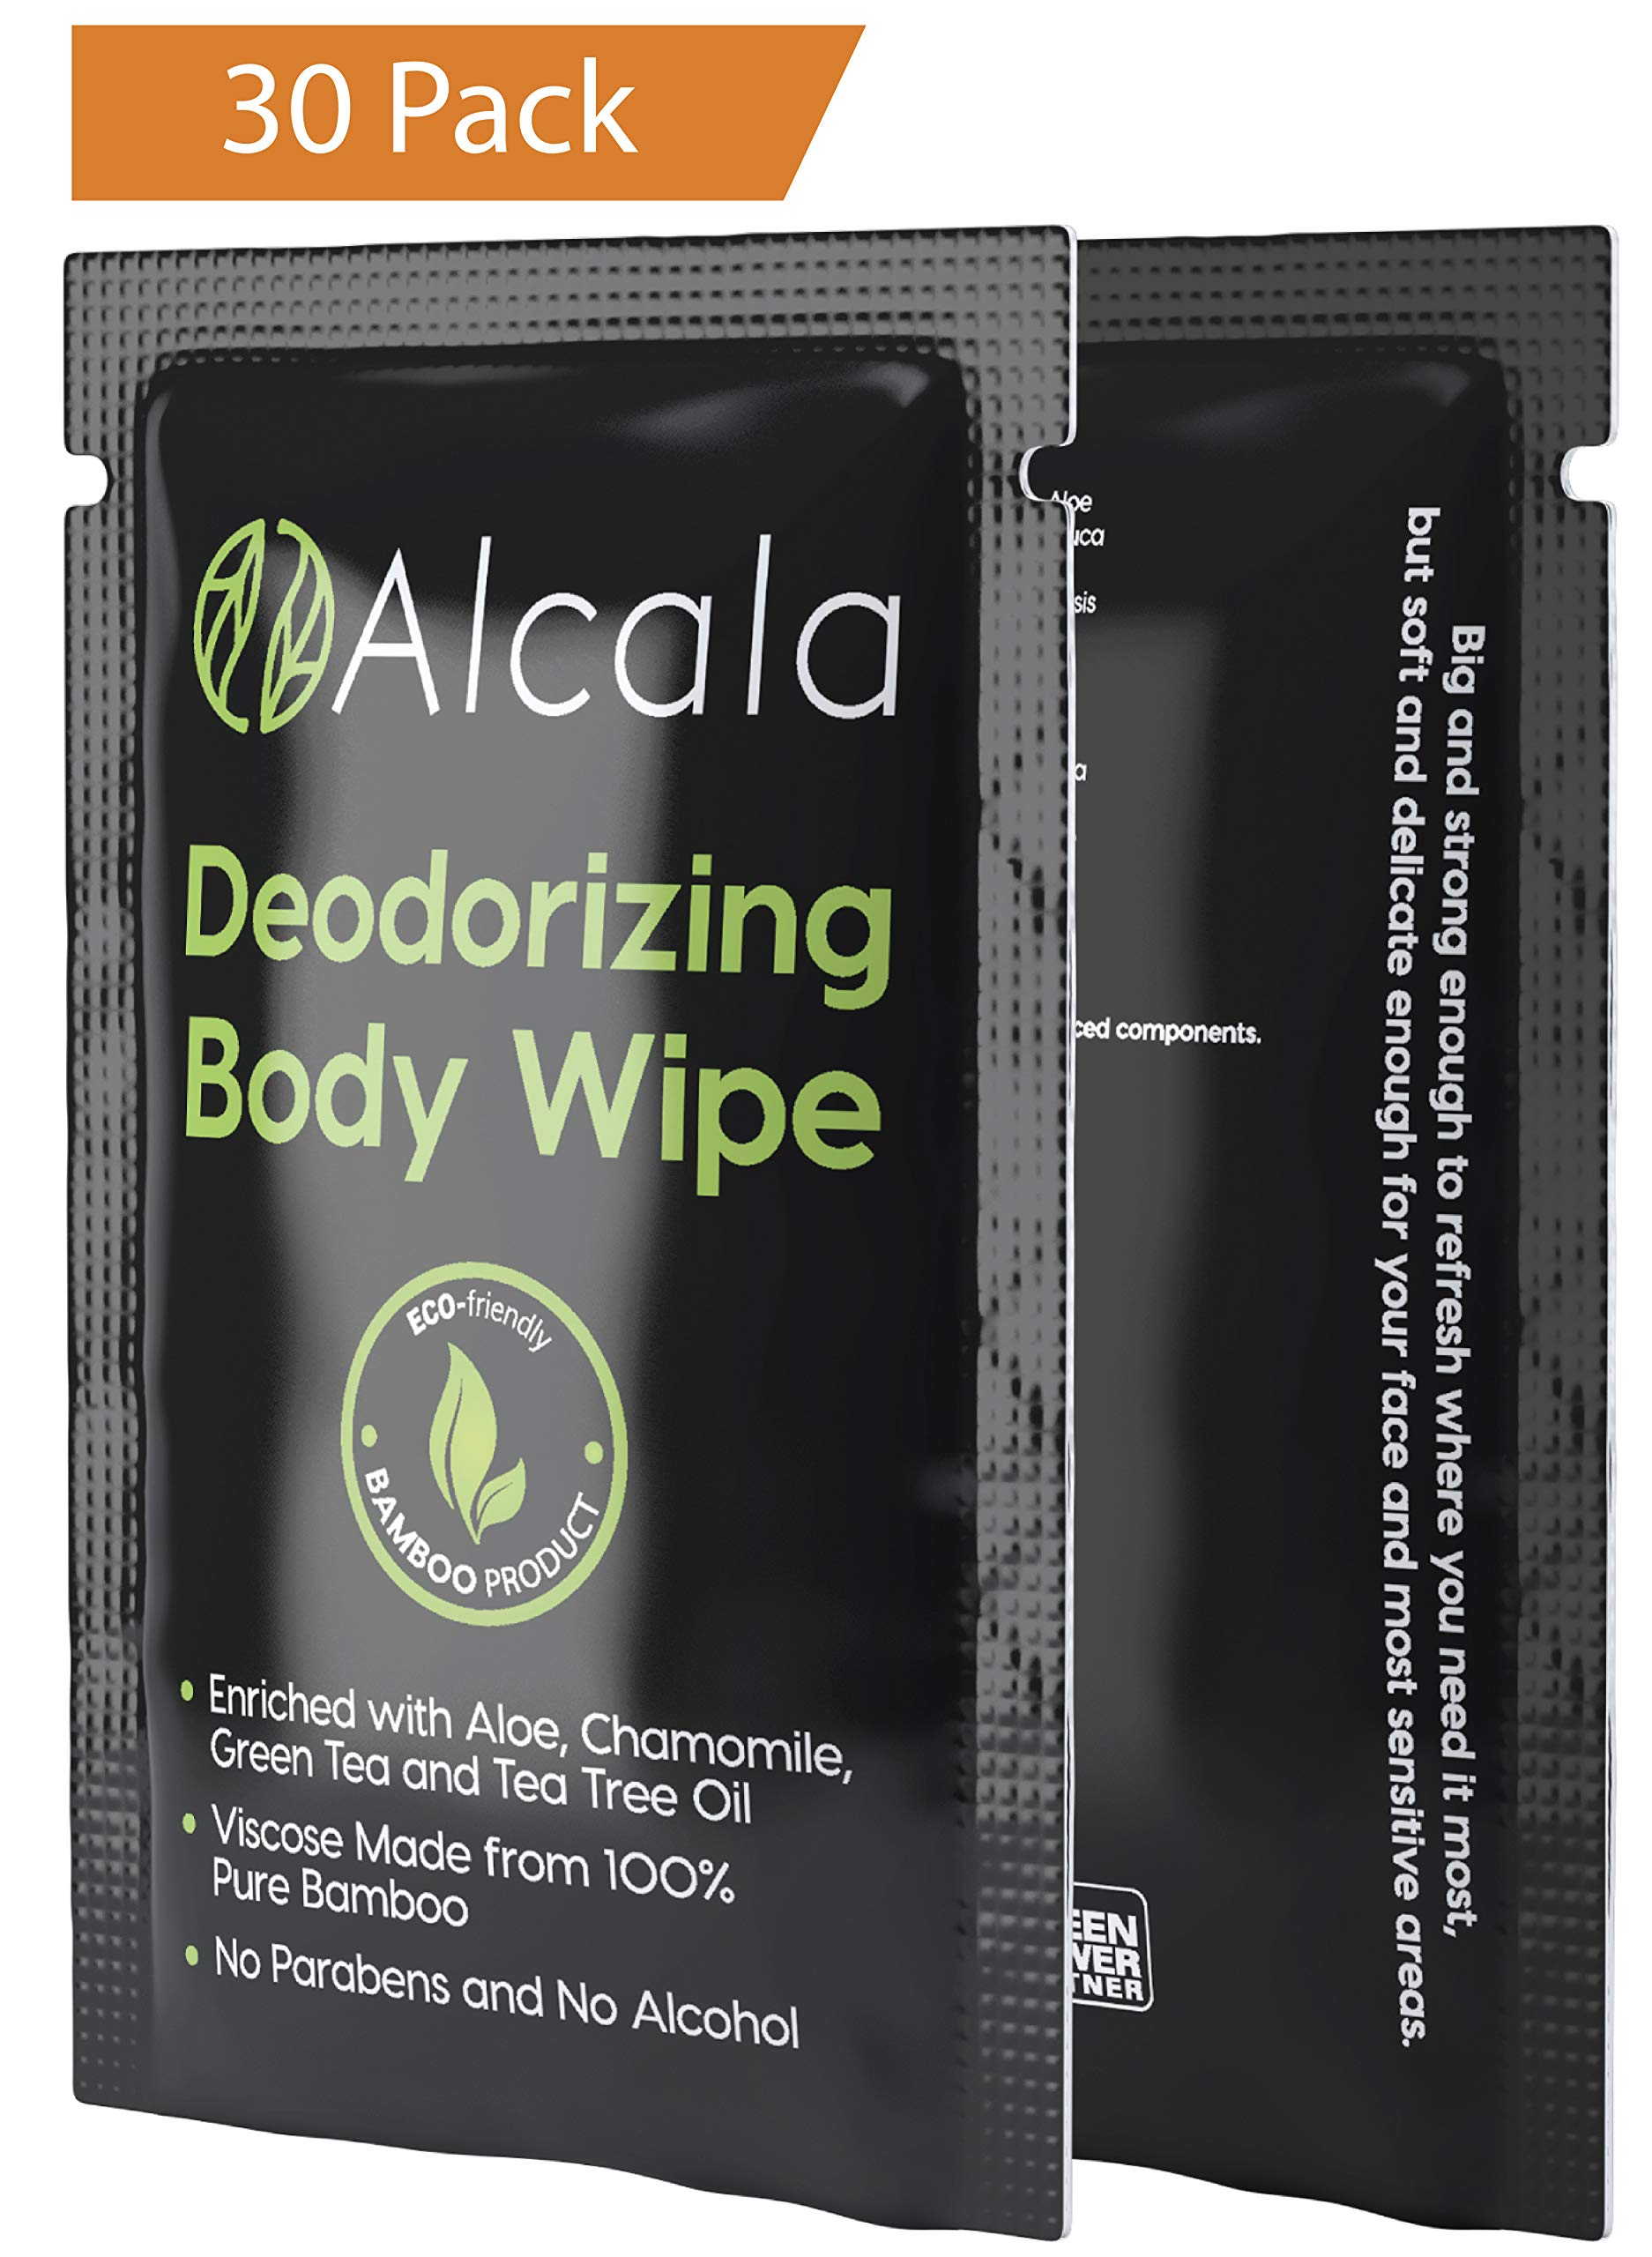 Deodorizing Body Wipes 100% Pure Bamboo with Tea Tree Oil, Individually Wrapped Biodegradable Shower Wipes, Extra Large 10 x10 inches (30 Pack) by Alcala